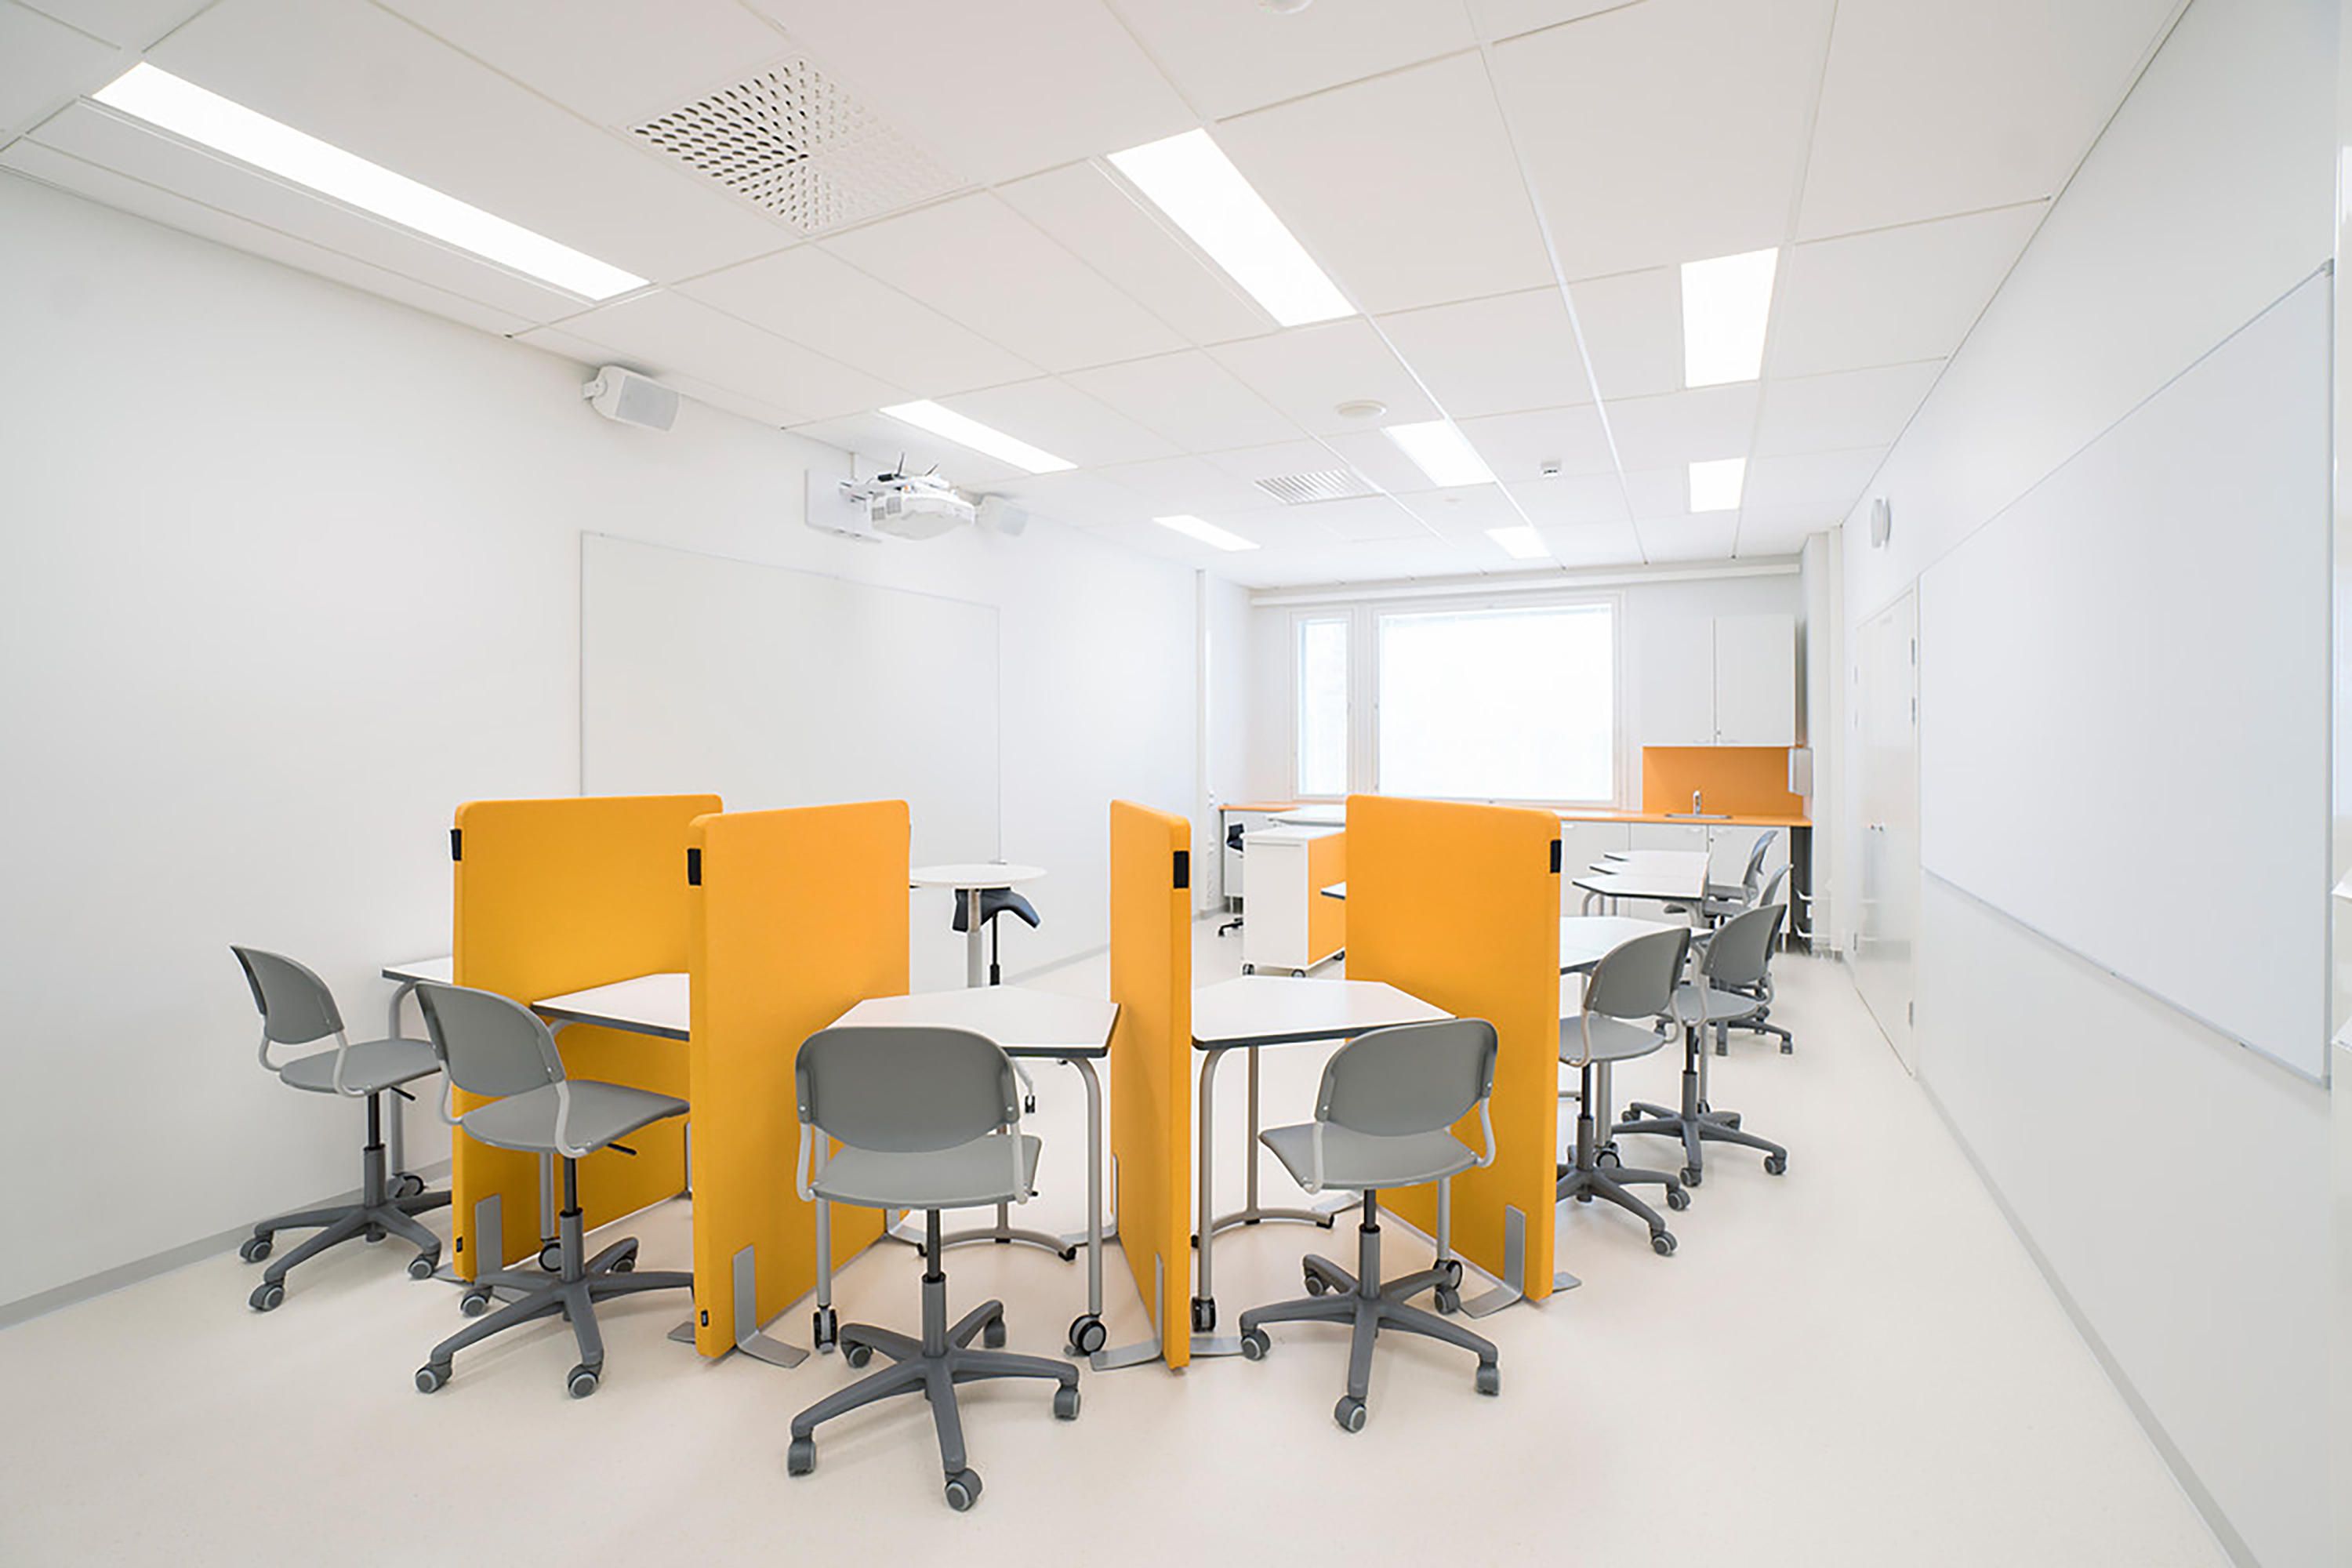 Mac work chair low classroom school chairs from for Furniture 4 schools